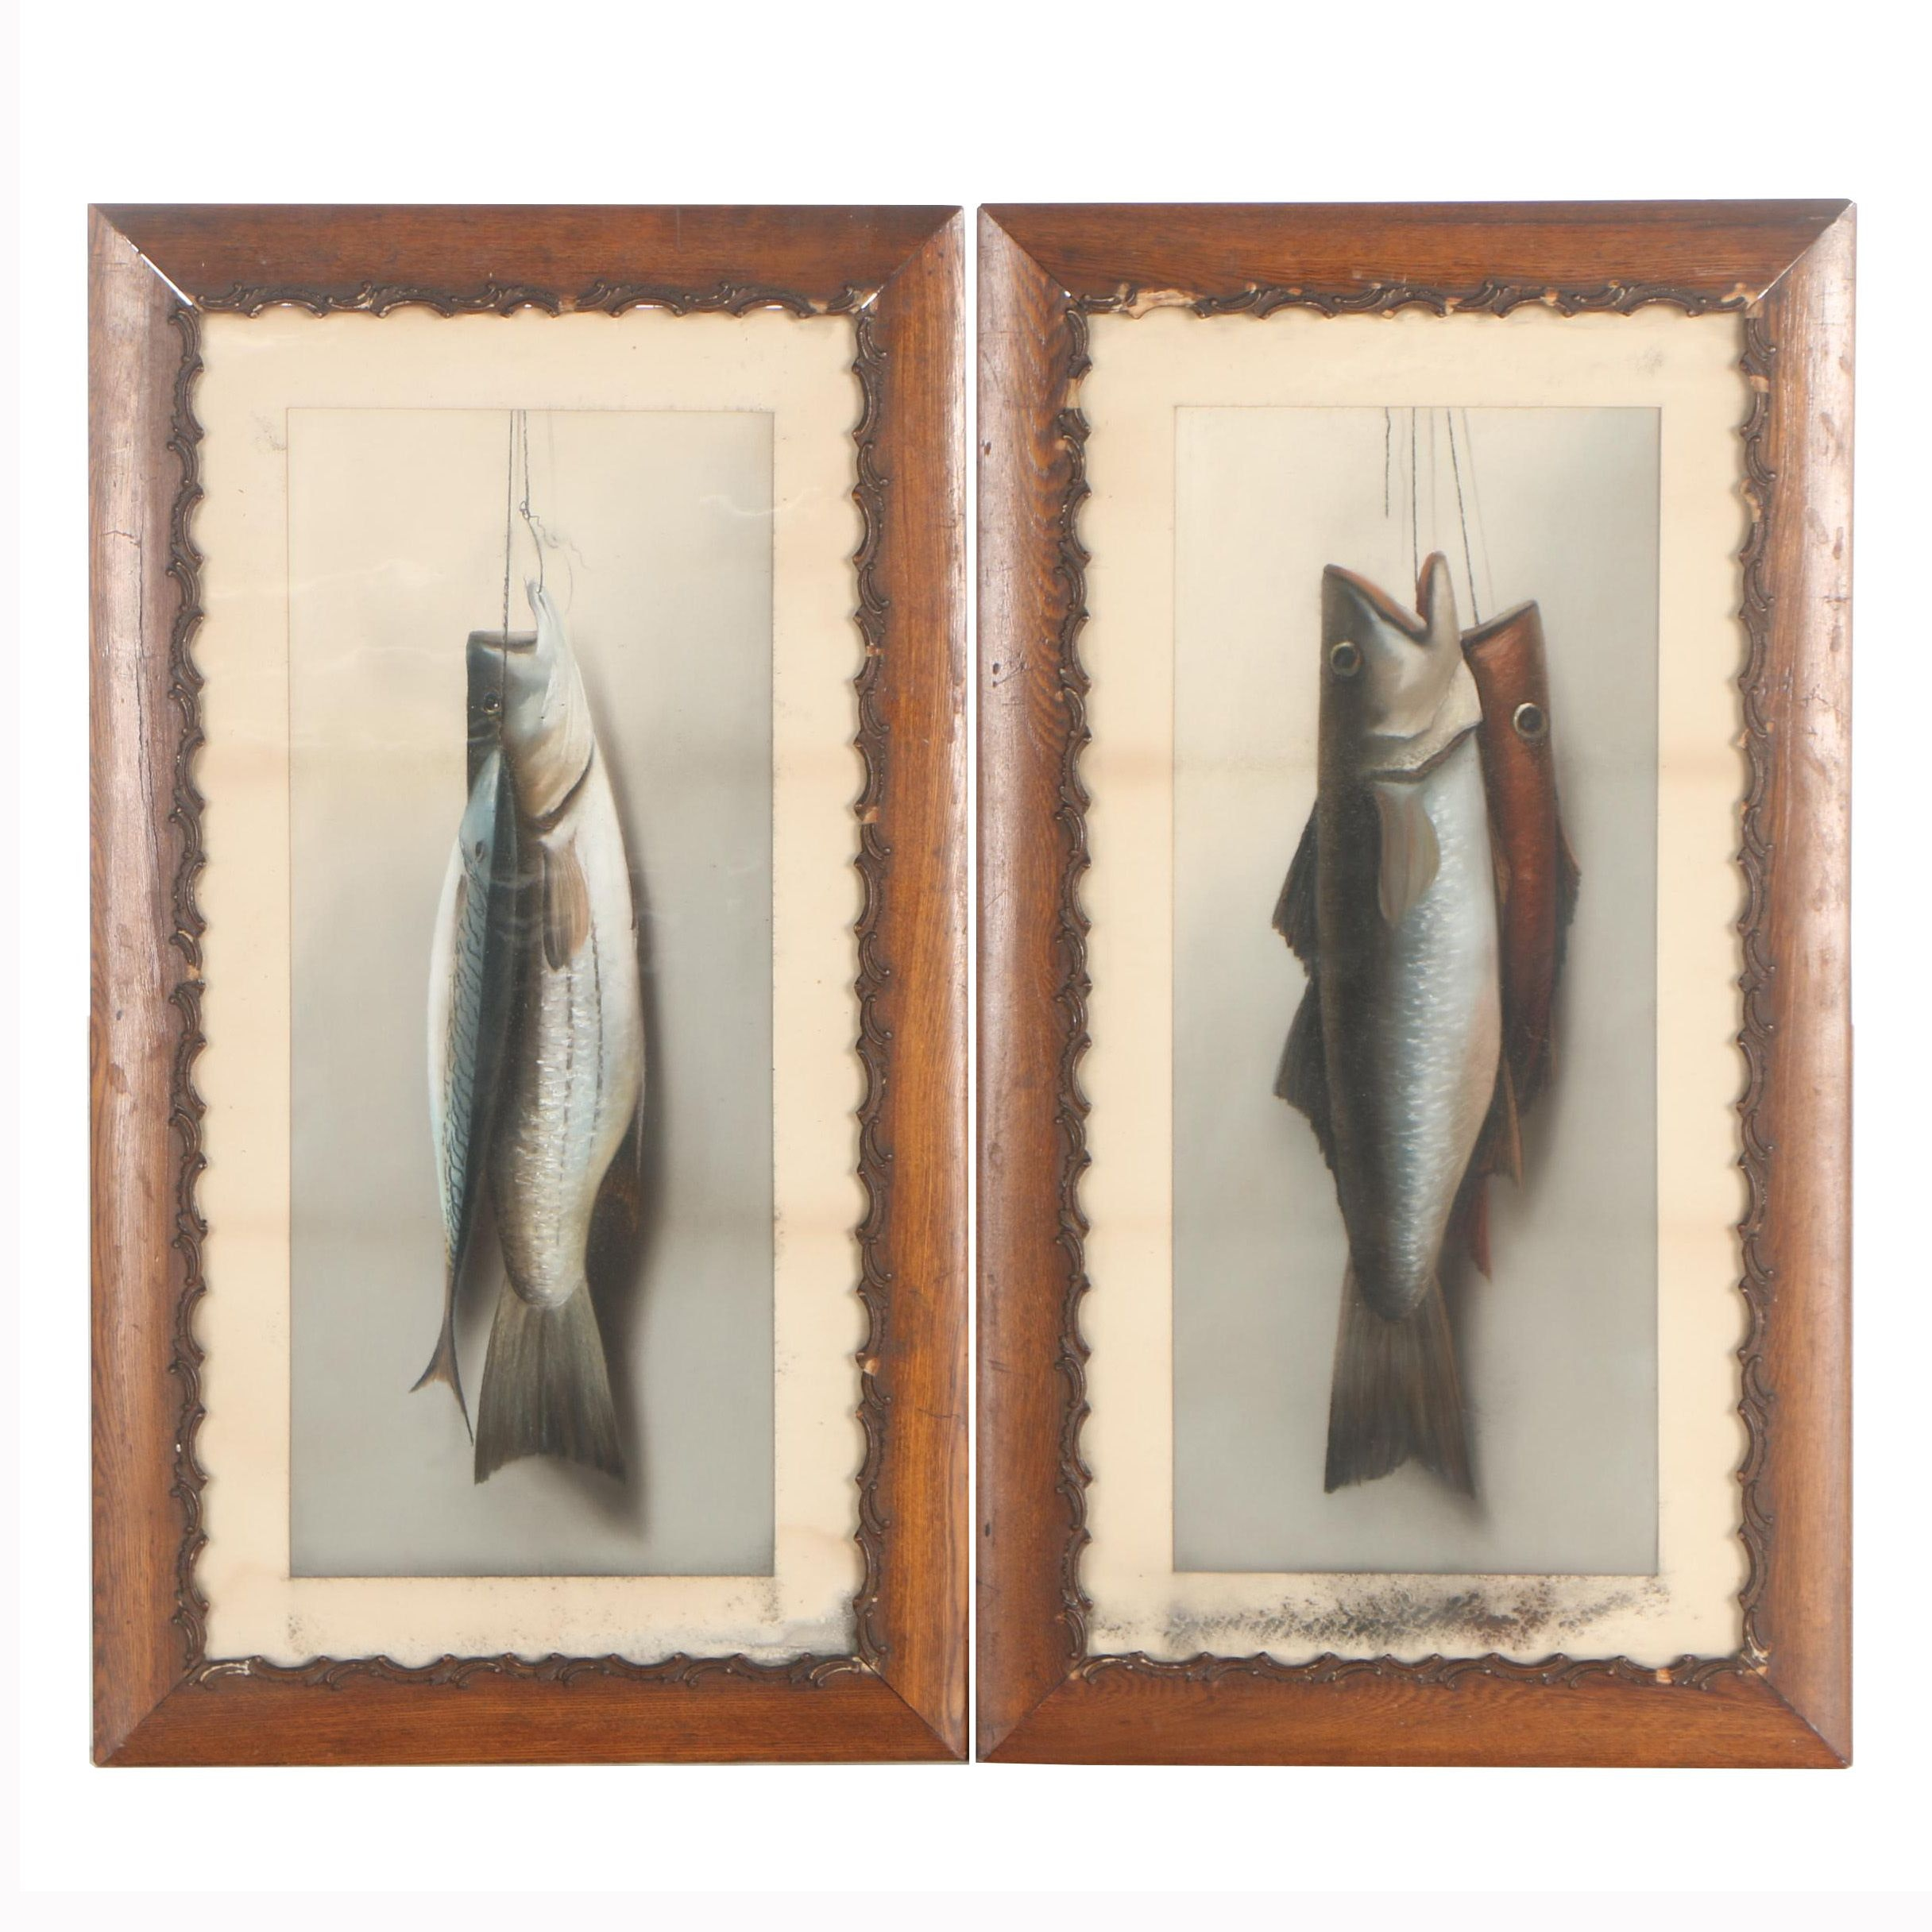 Vintage Pastel Drawings of Fish